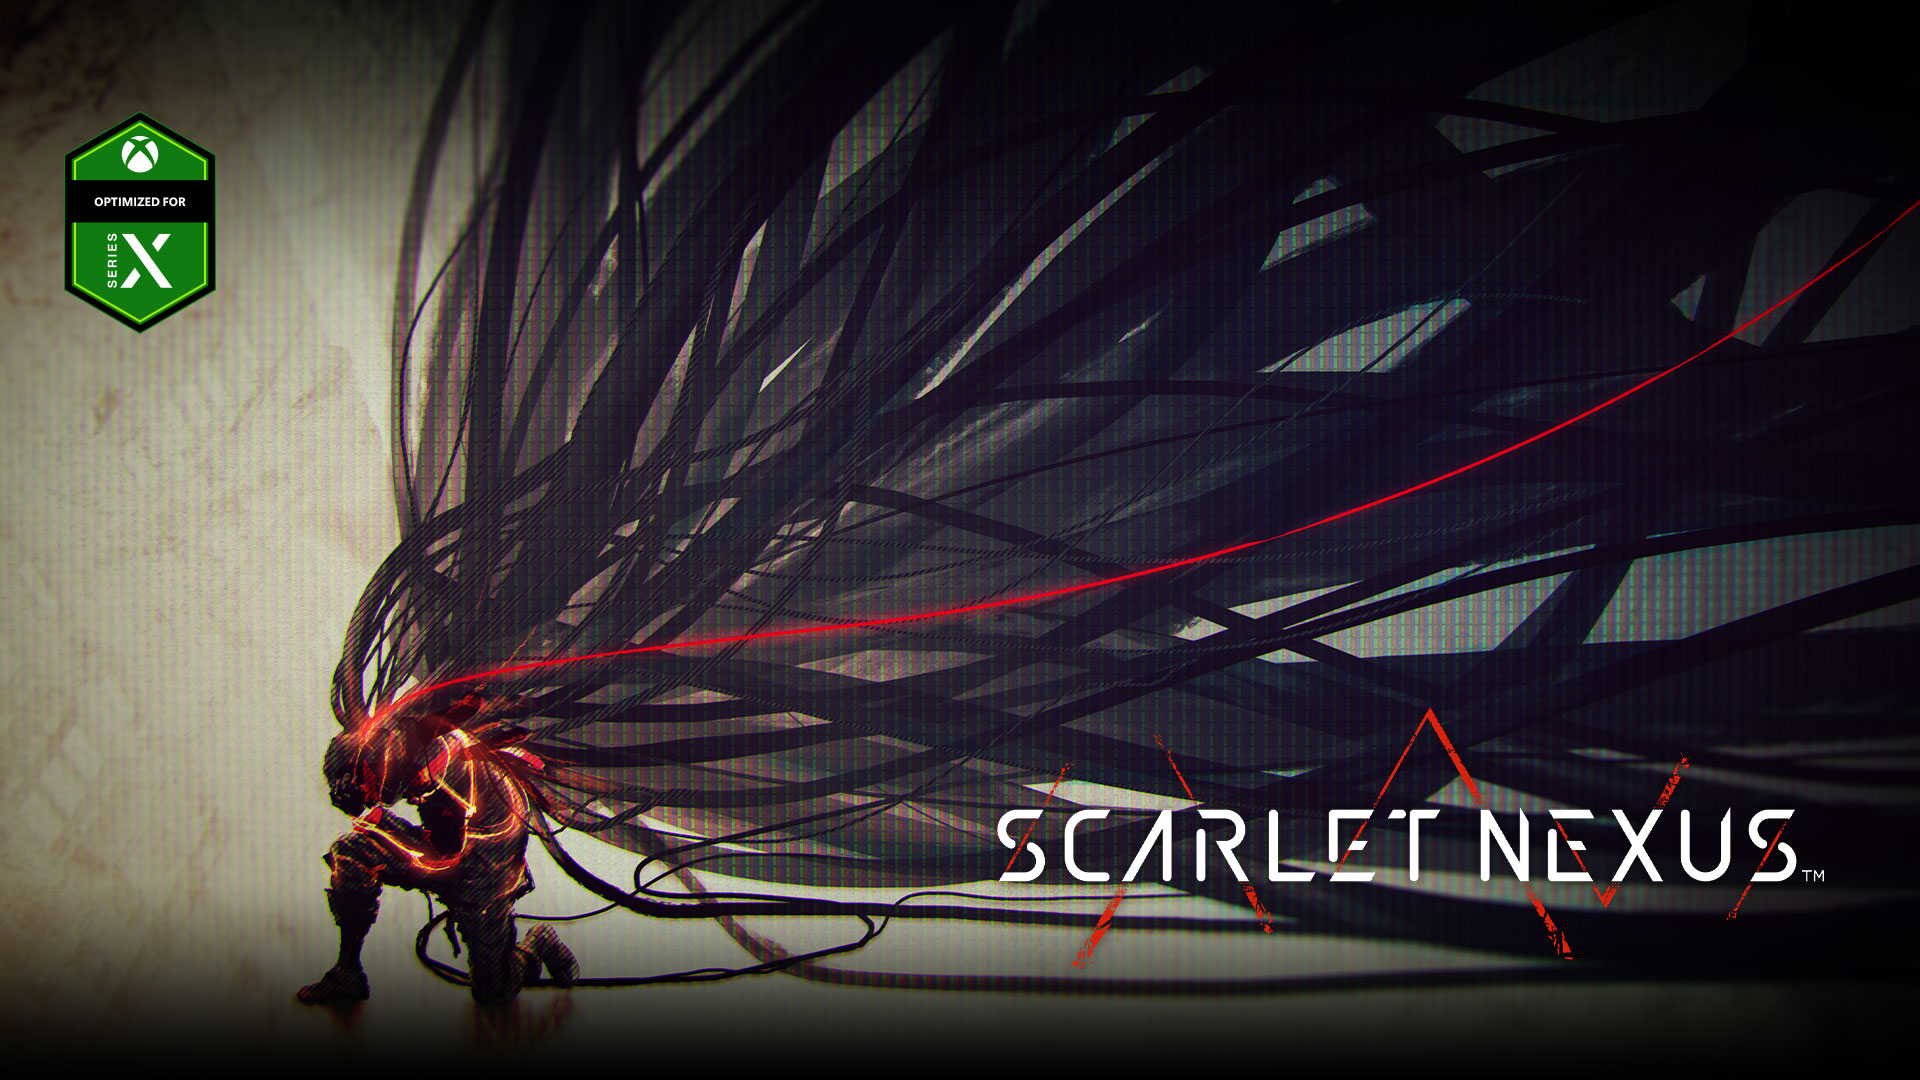 Scarlet Nexus, Optimized for Xbox Series X, A man kneels with large hair-like strands flowing from him